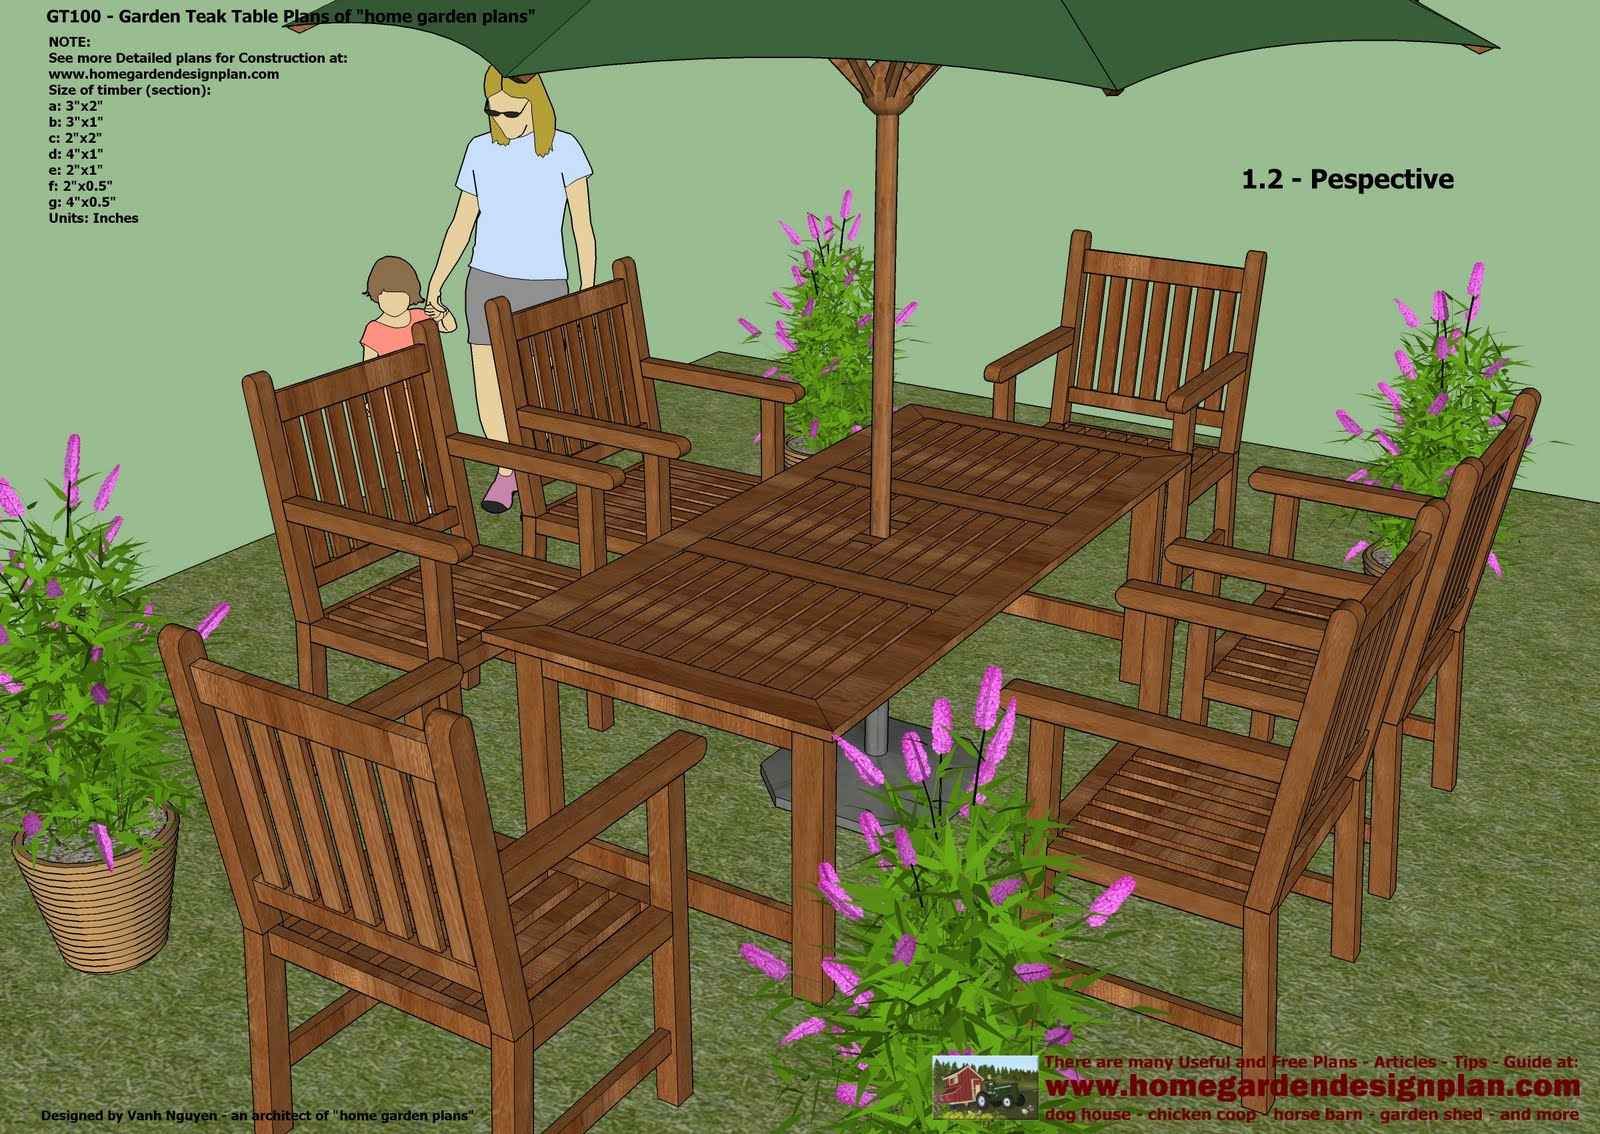 ... - Garden Teak Tables - Woodworking Plans - Outdoor Furniture Plans